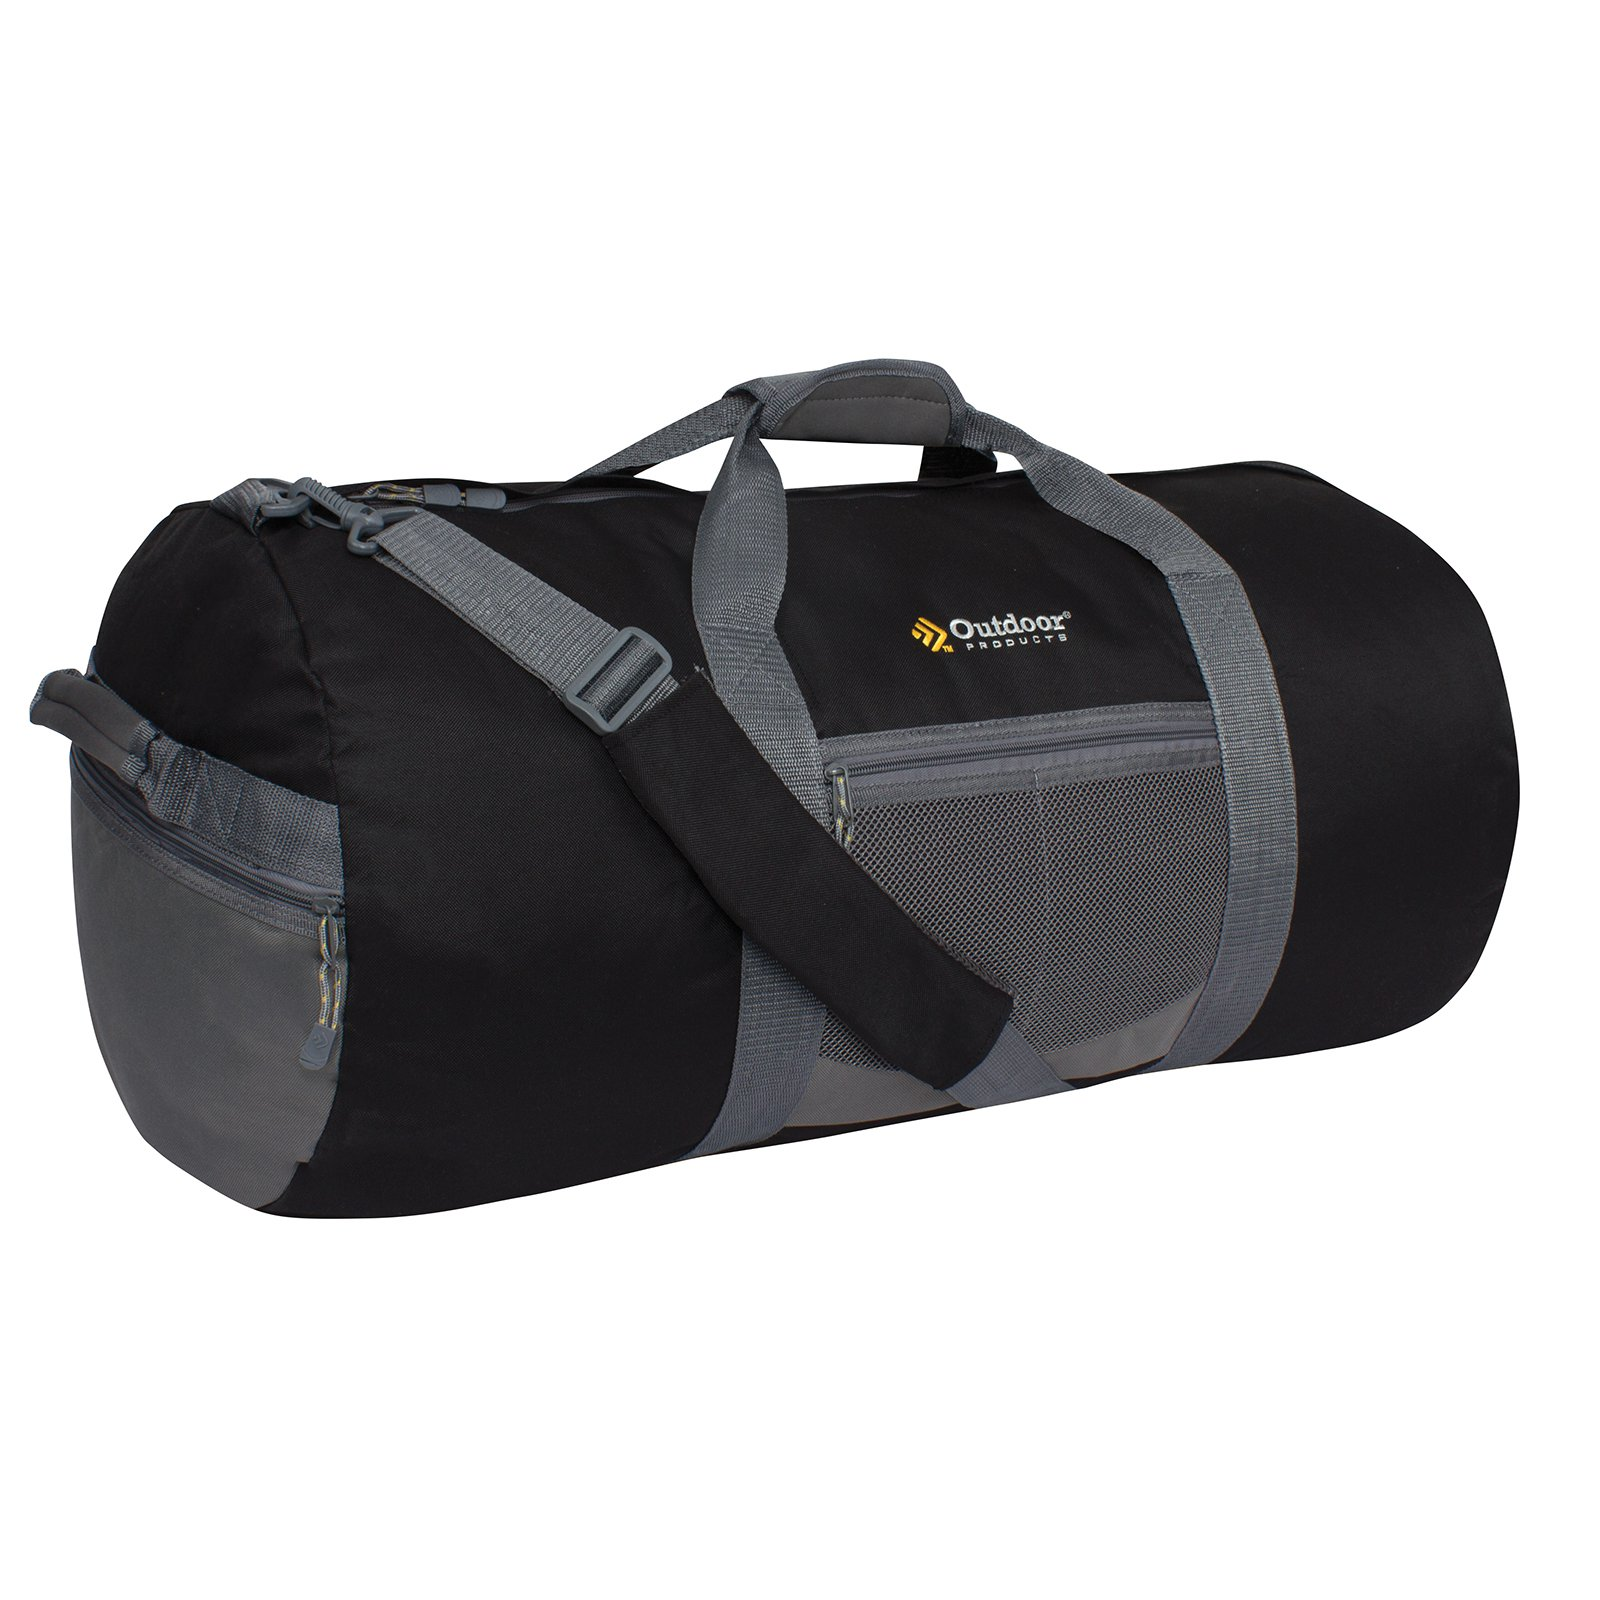 Outdoor Products Large Utility Duffle by Outdoor Products